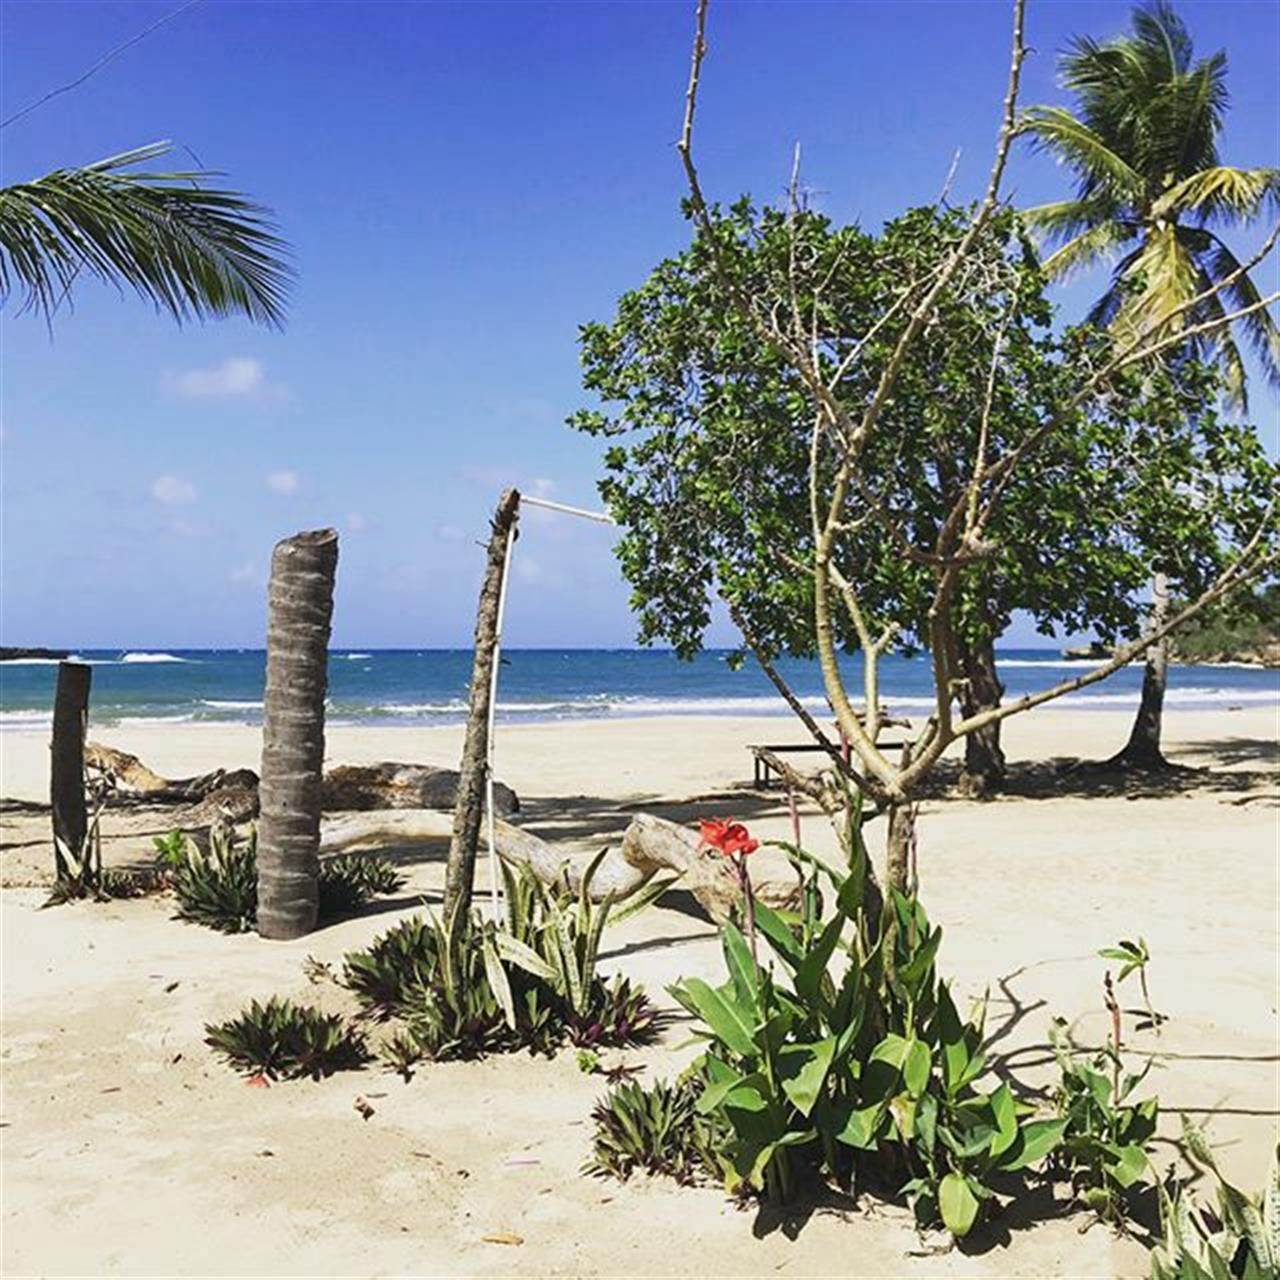 A beautiful sunny day in the Caribbean #Luperon #Beach #rural #entrepreneur #investment #luxuryrealestate #leadingrelocal #dominicanrepublic #lifestyle #nature